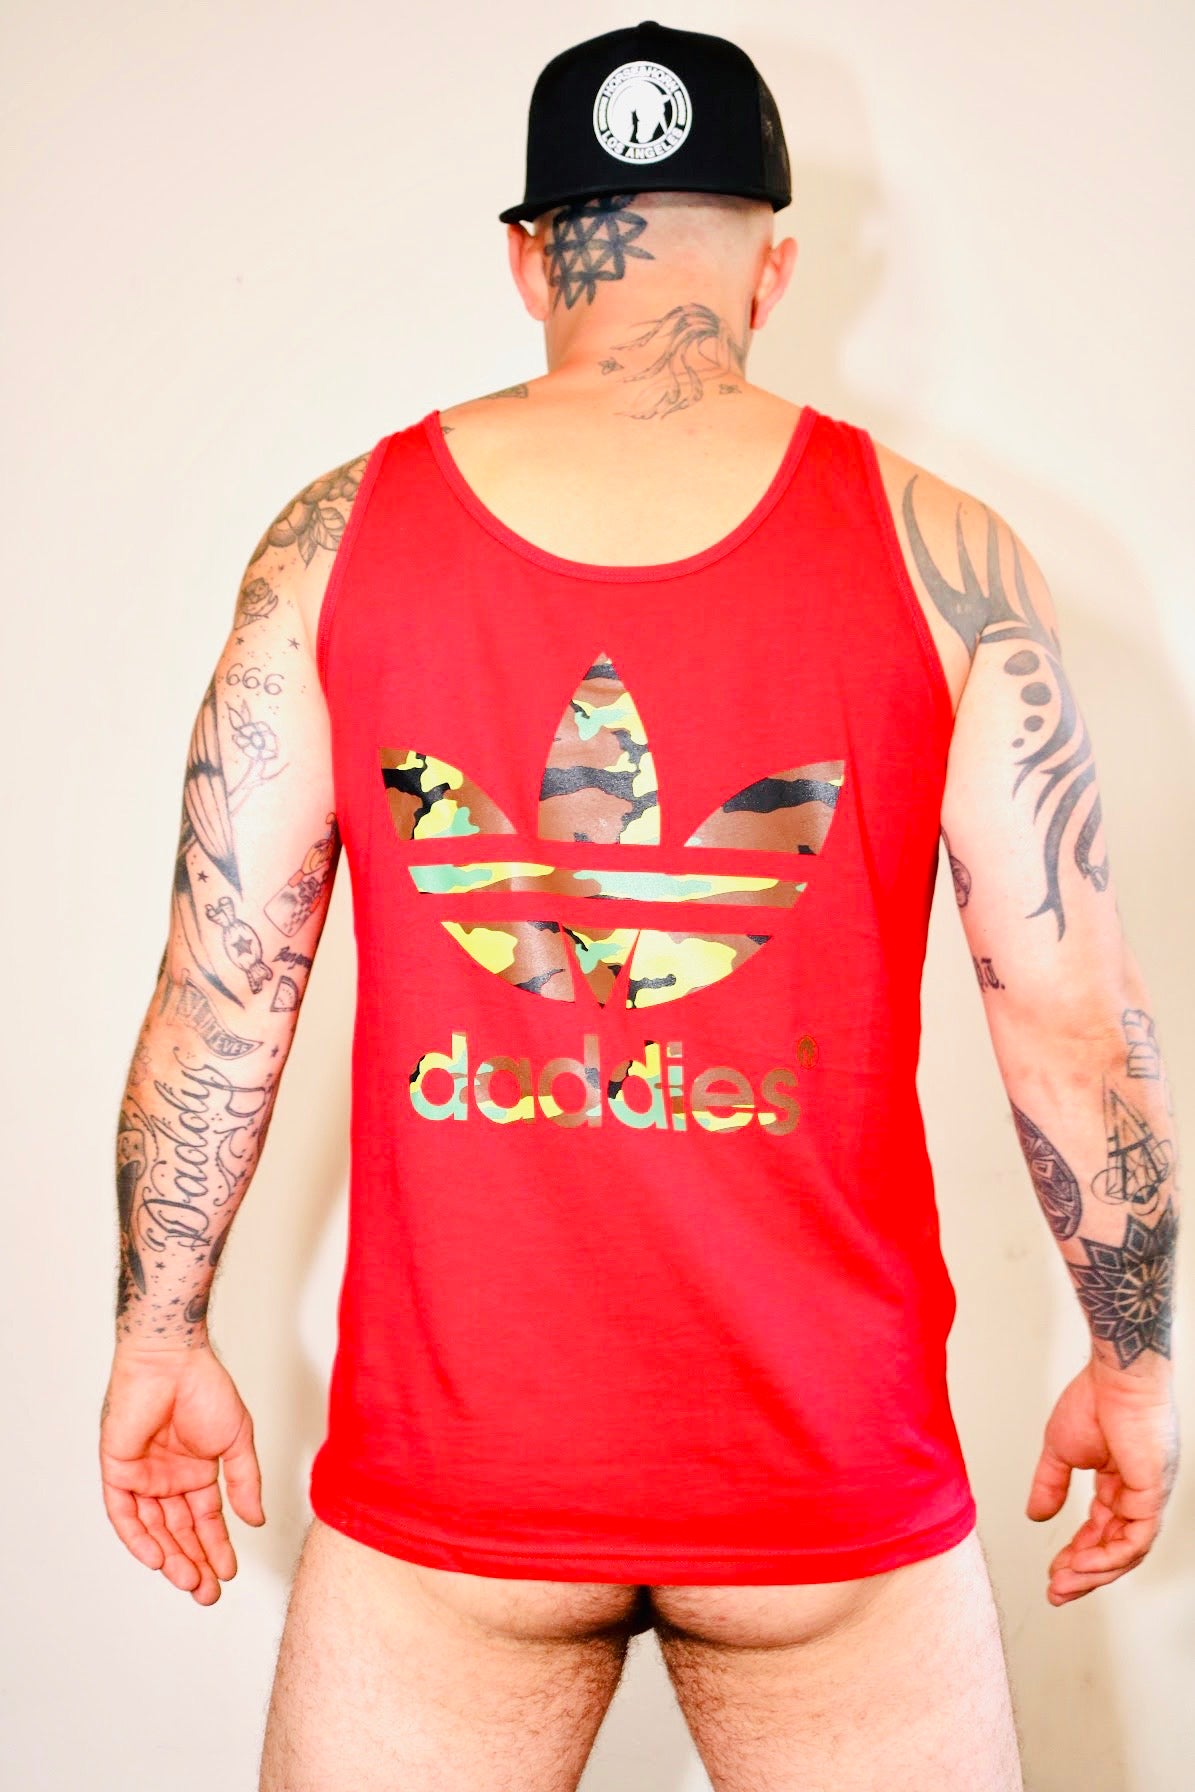 DADDIES CLASSIC CUT SOFT AF  TANK TOP CHERRY RED FILLED WITH CAMO